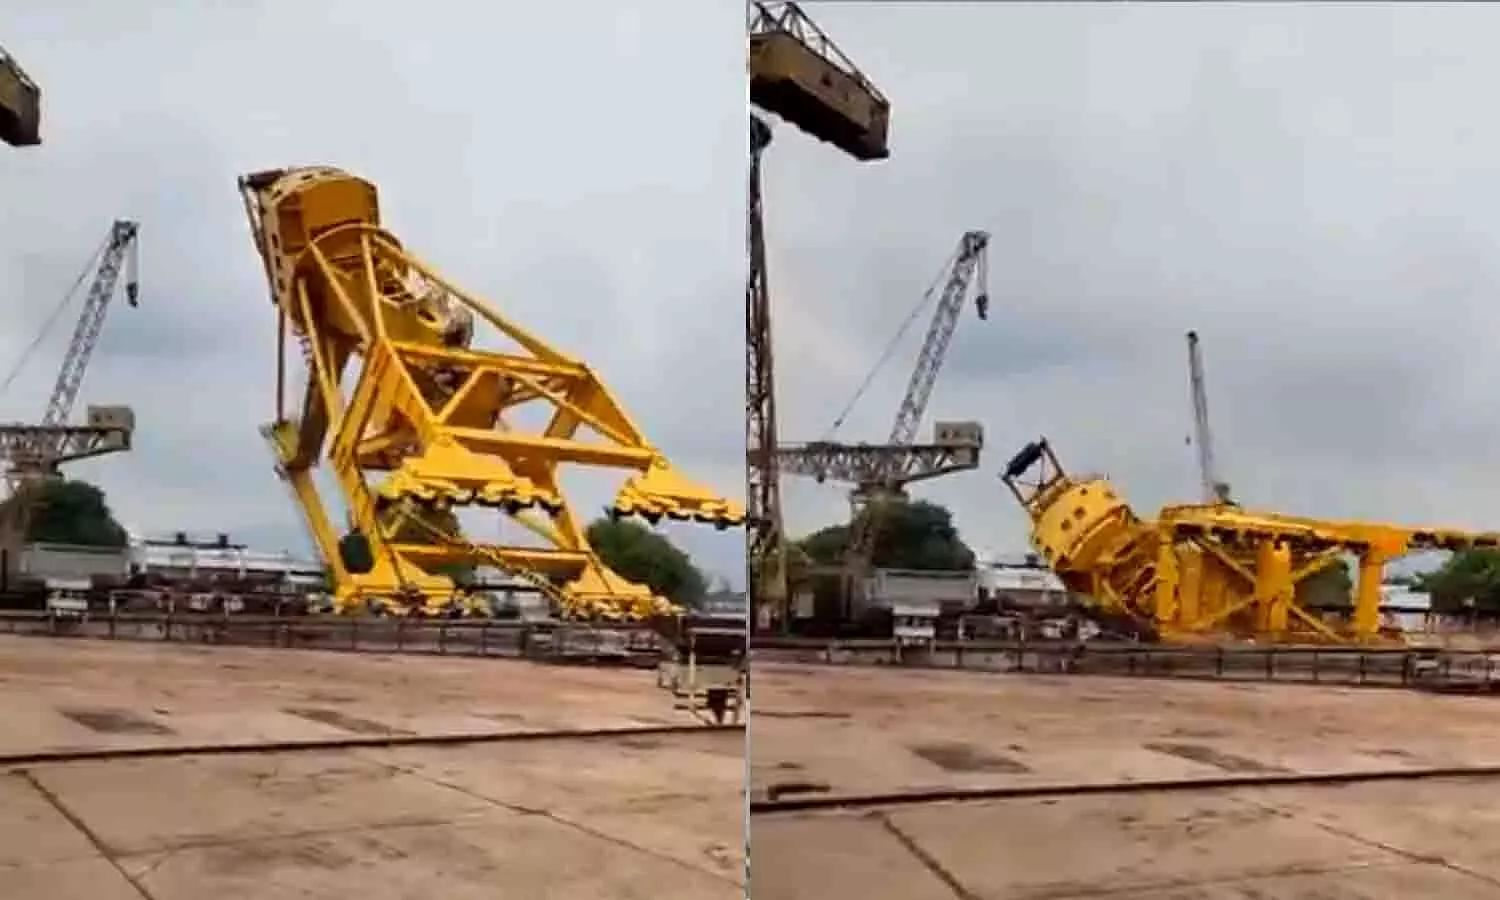 11 workers dead in Visakhapatnam shipyard crane collapse